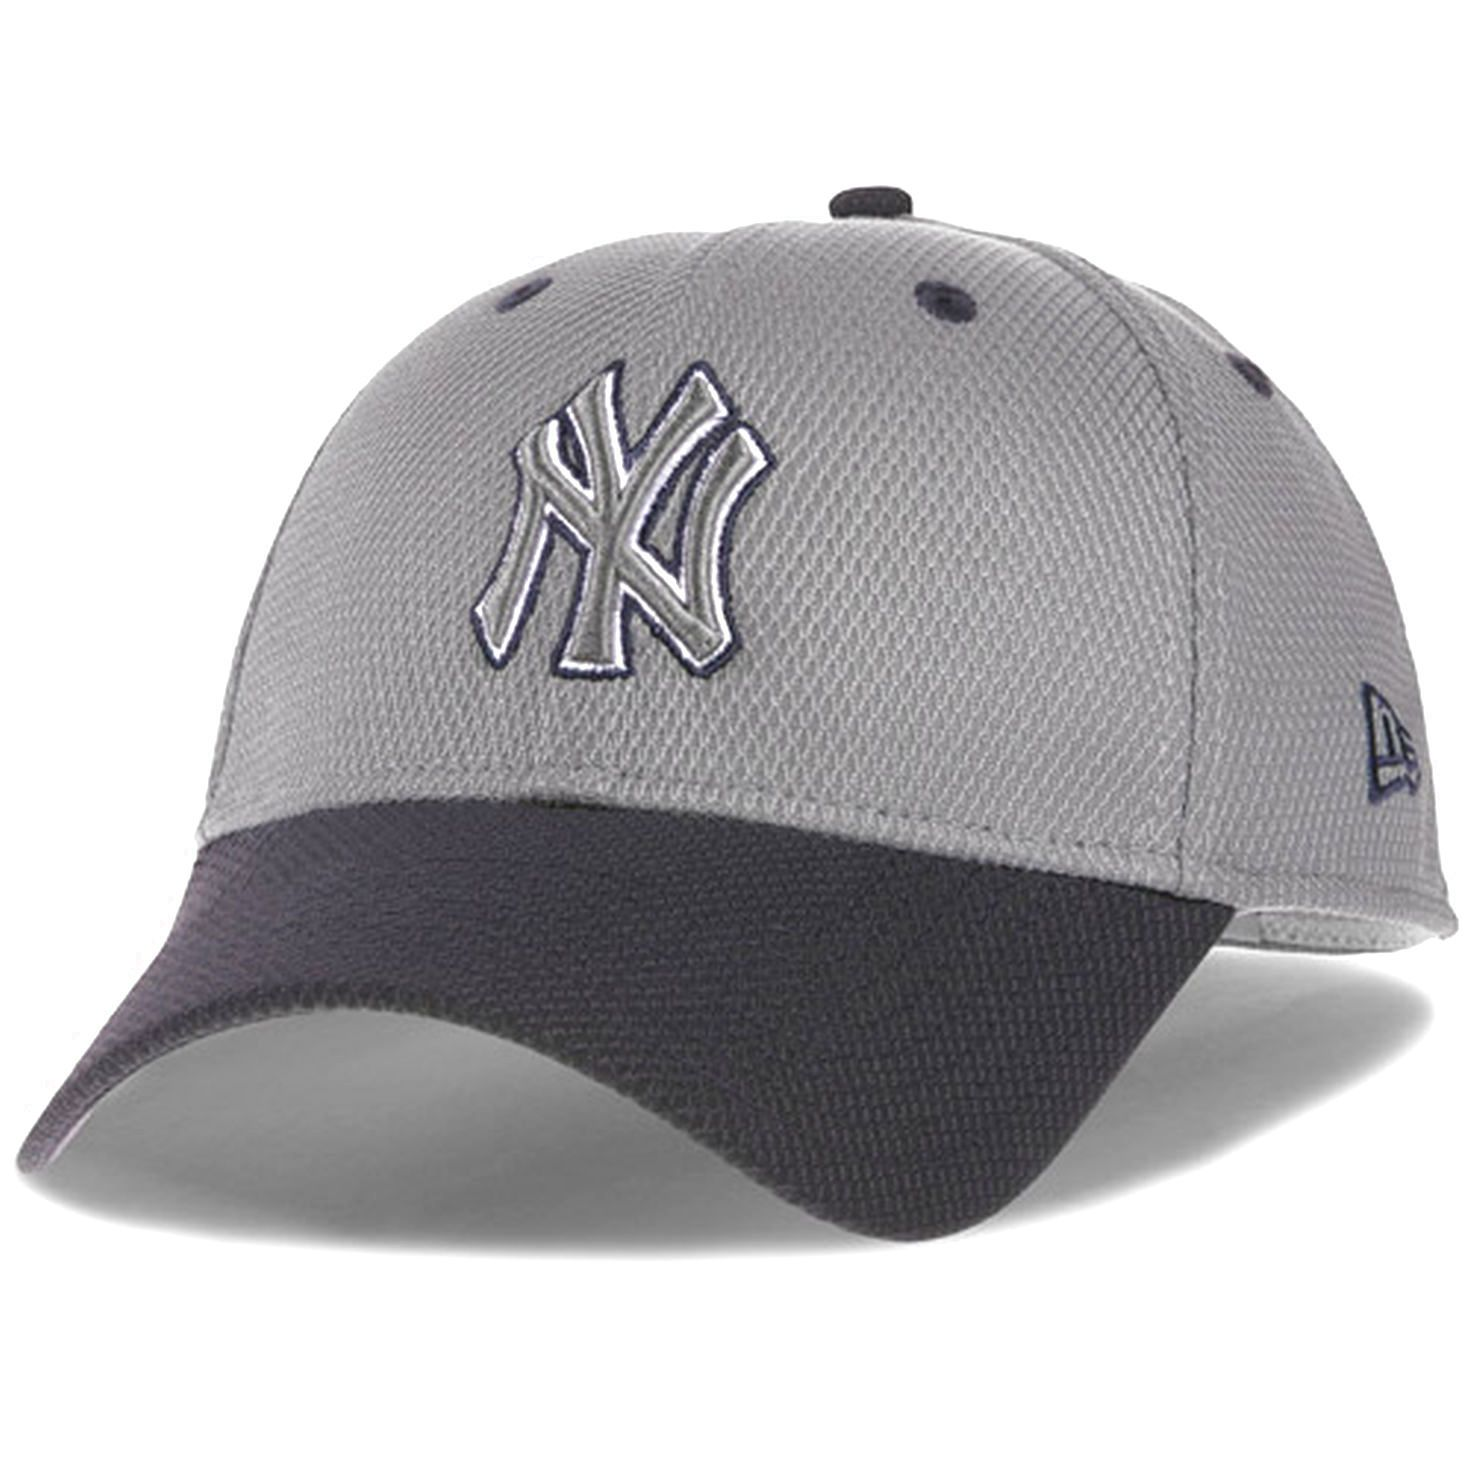 HEATHER TEAM 39THIRTY NEW YORK YANKEES - ACCESSORIES - Hats New Era zbsOu